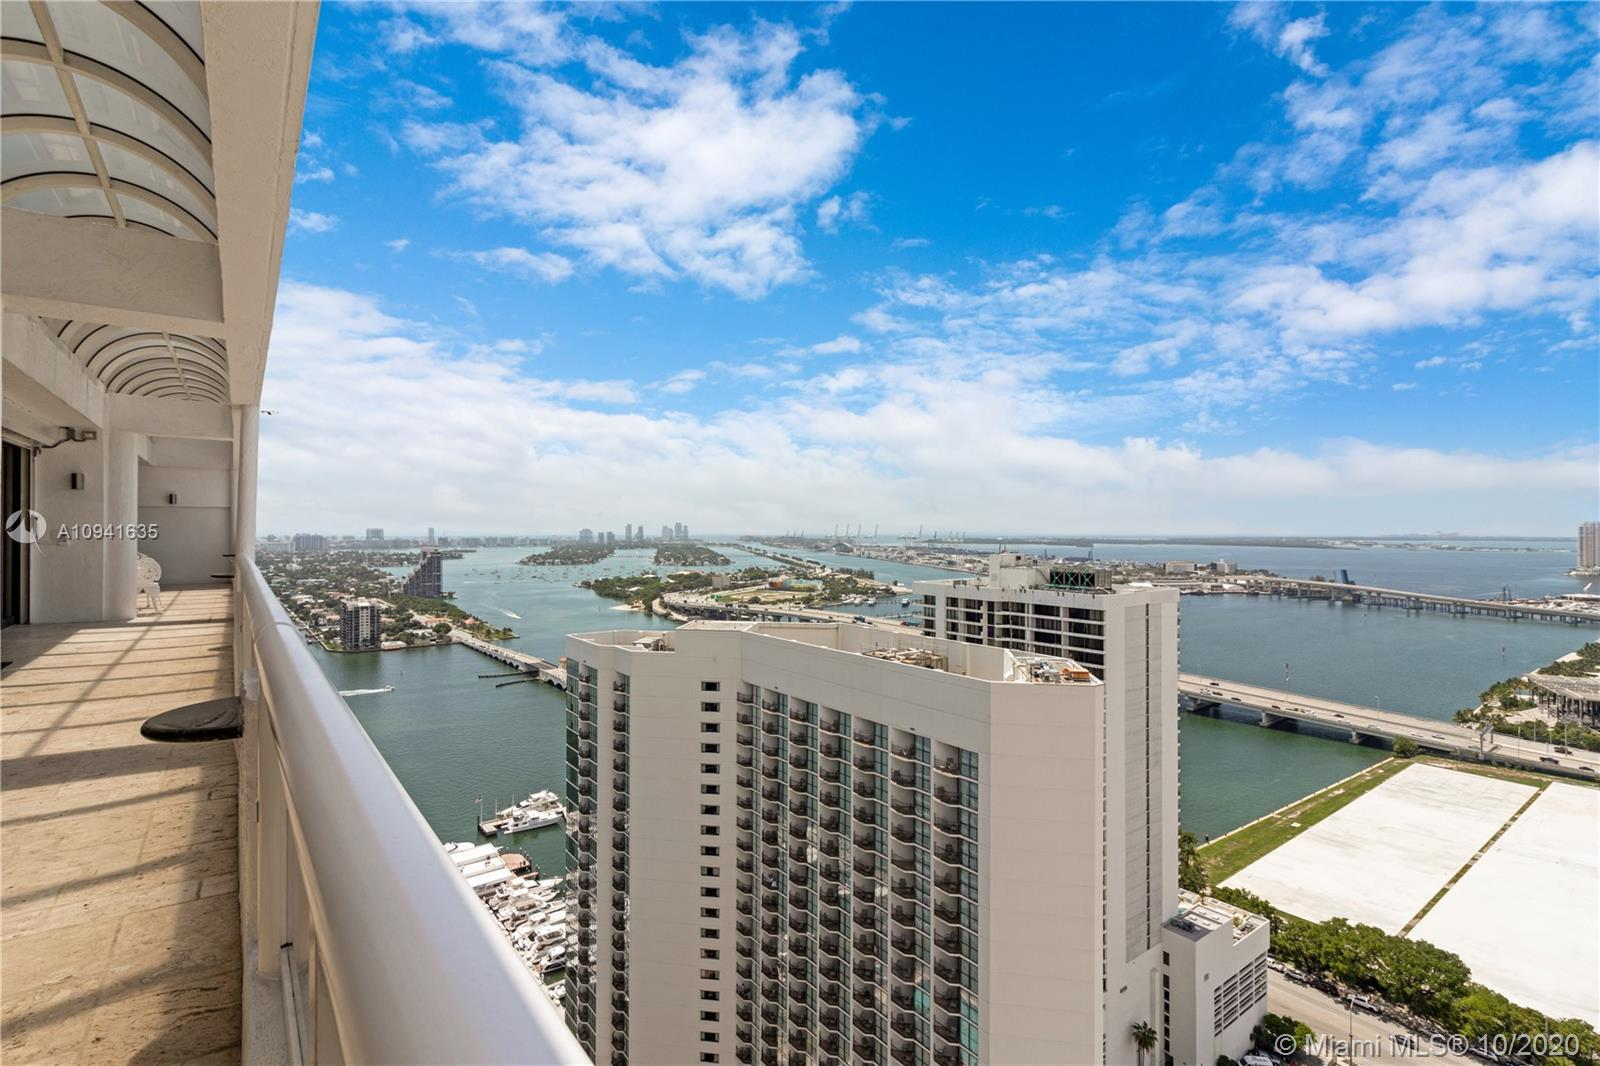 Top floor penthouse with spectacular panoramic views of the bay and the Miami skyline. EVERYTHING in